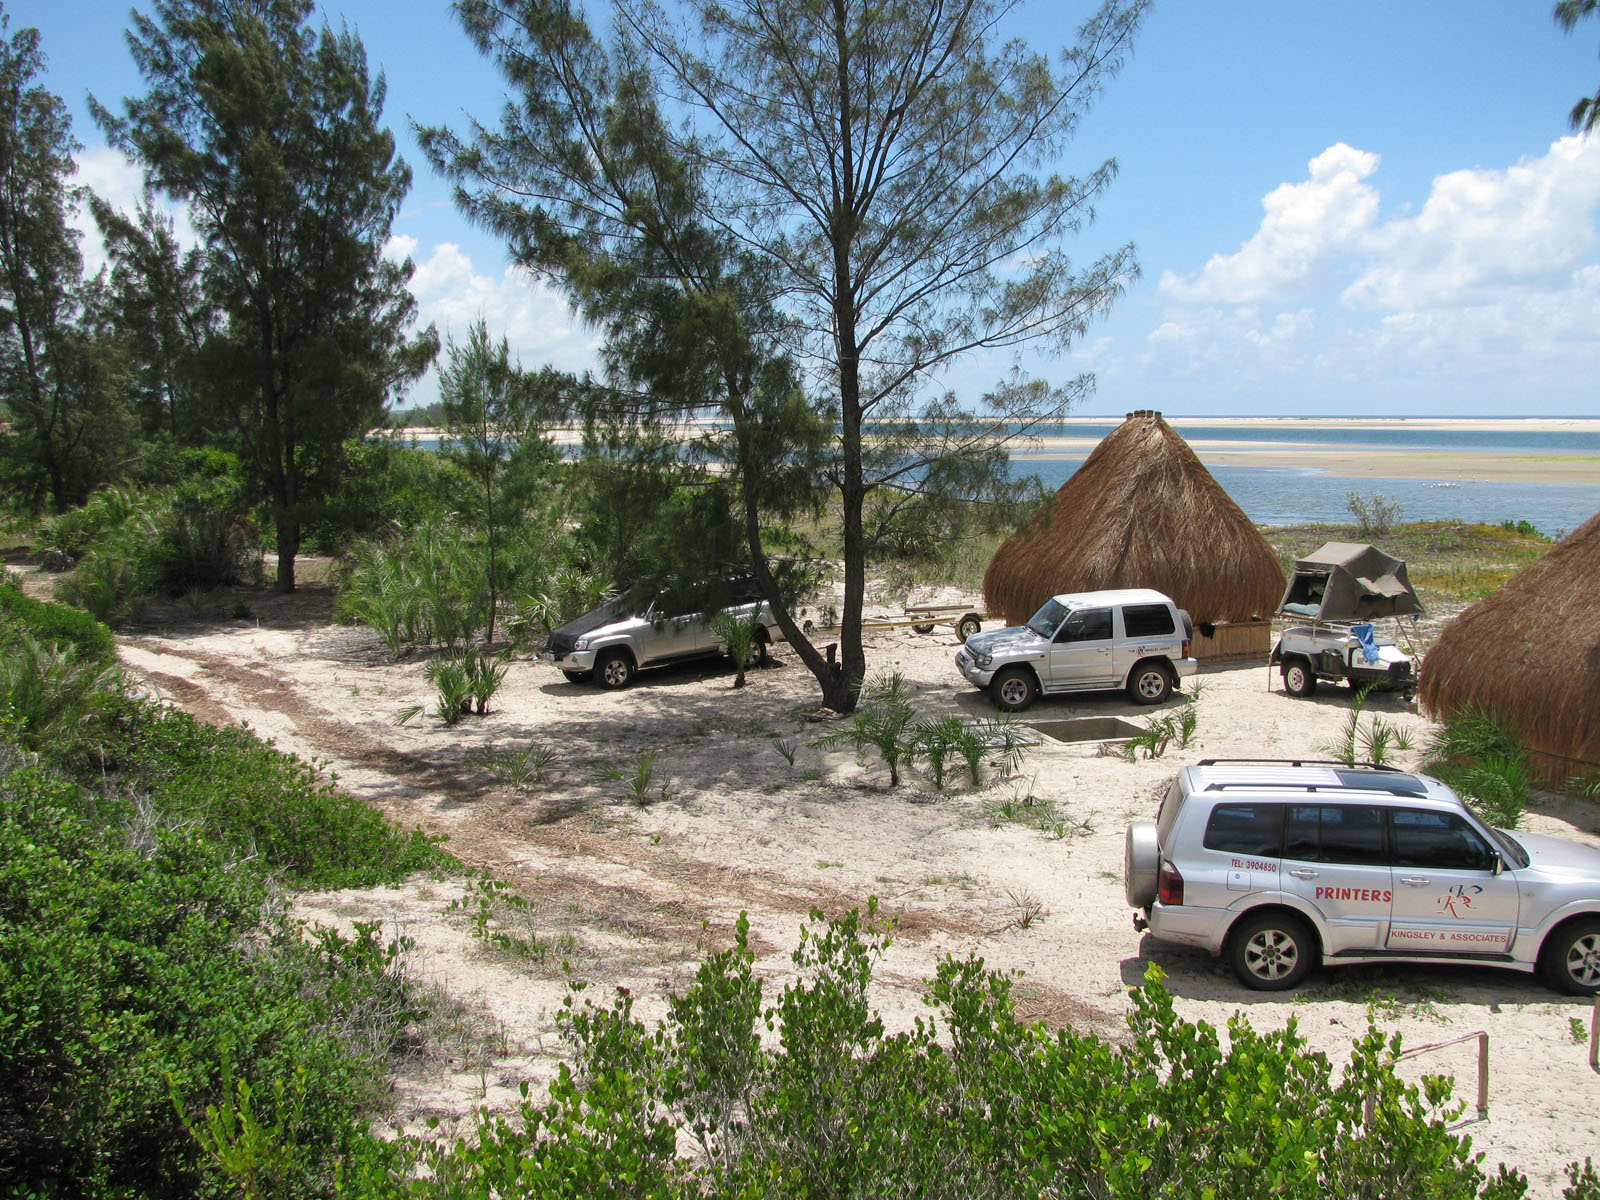 Barracuda-parking--macachula-getaway-camping-fishing-outdoor-adventure